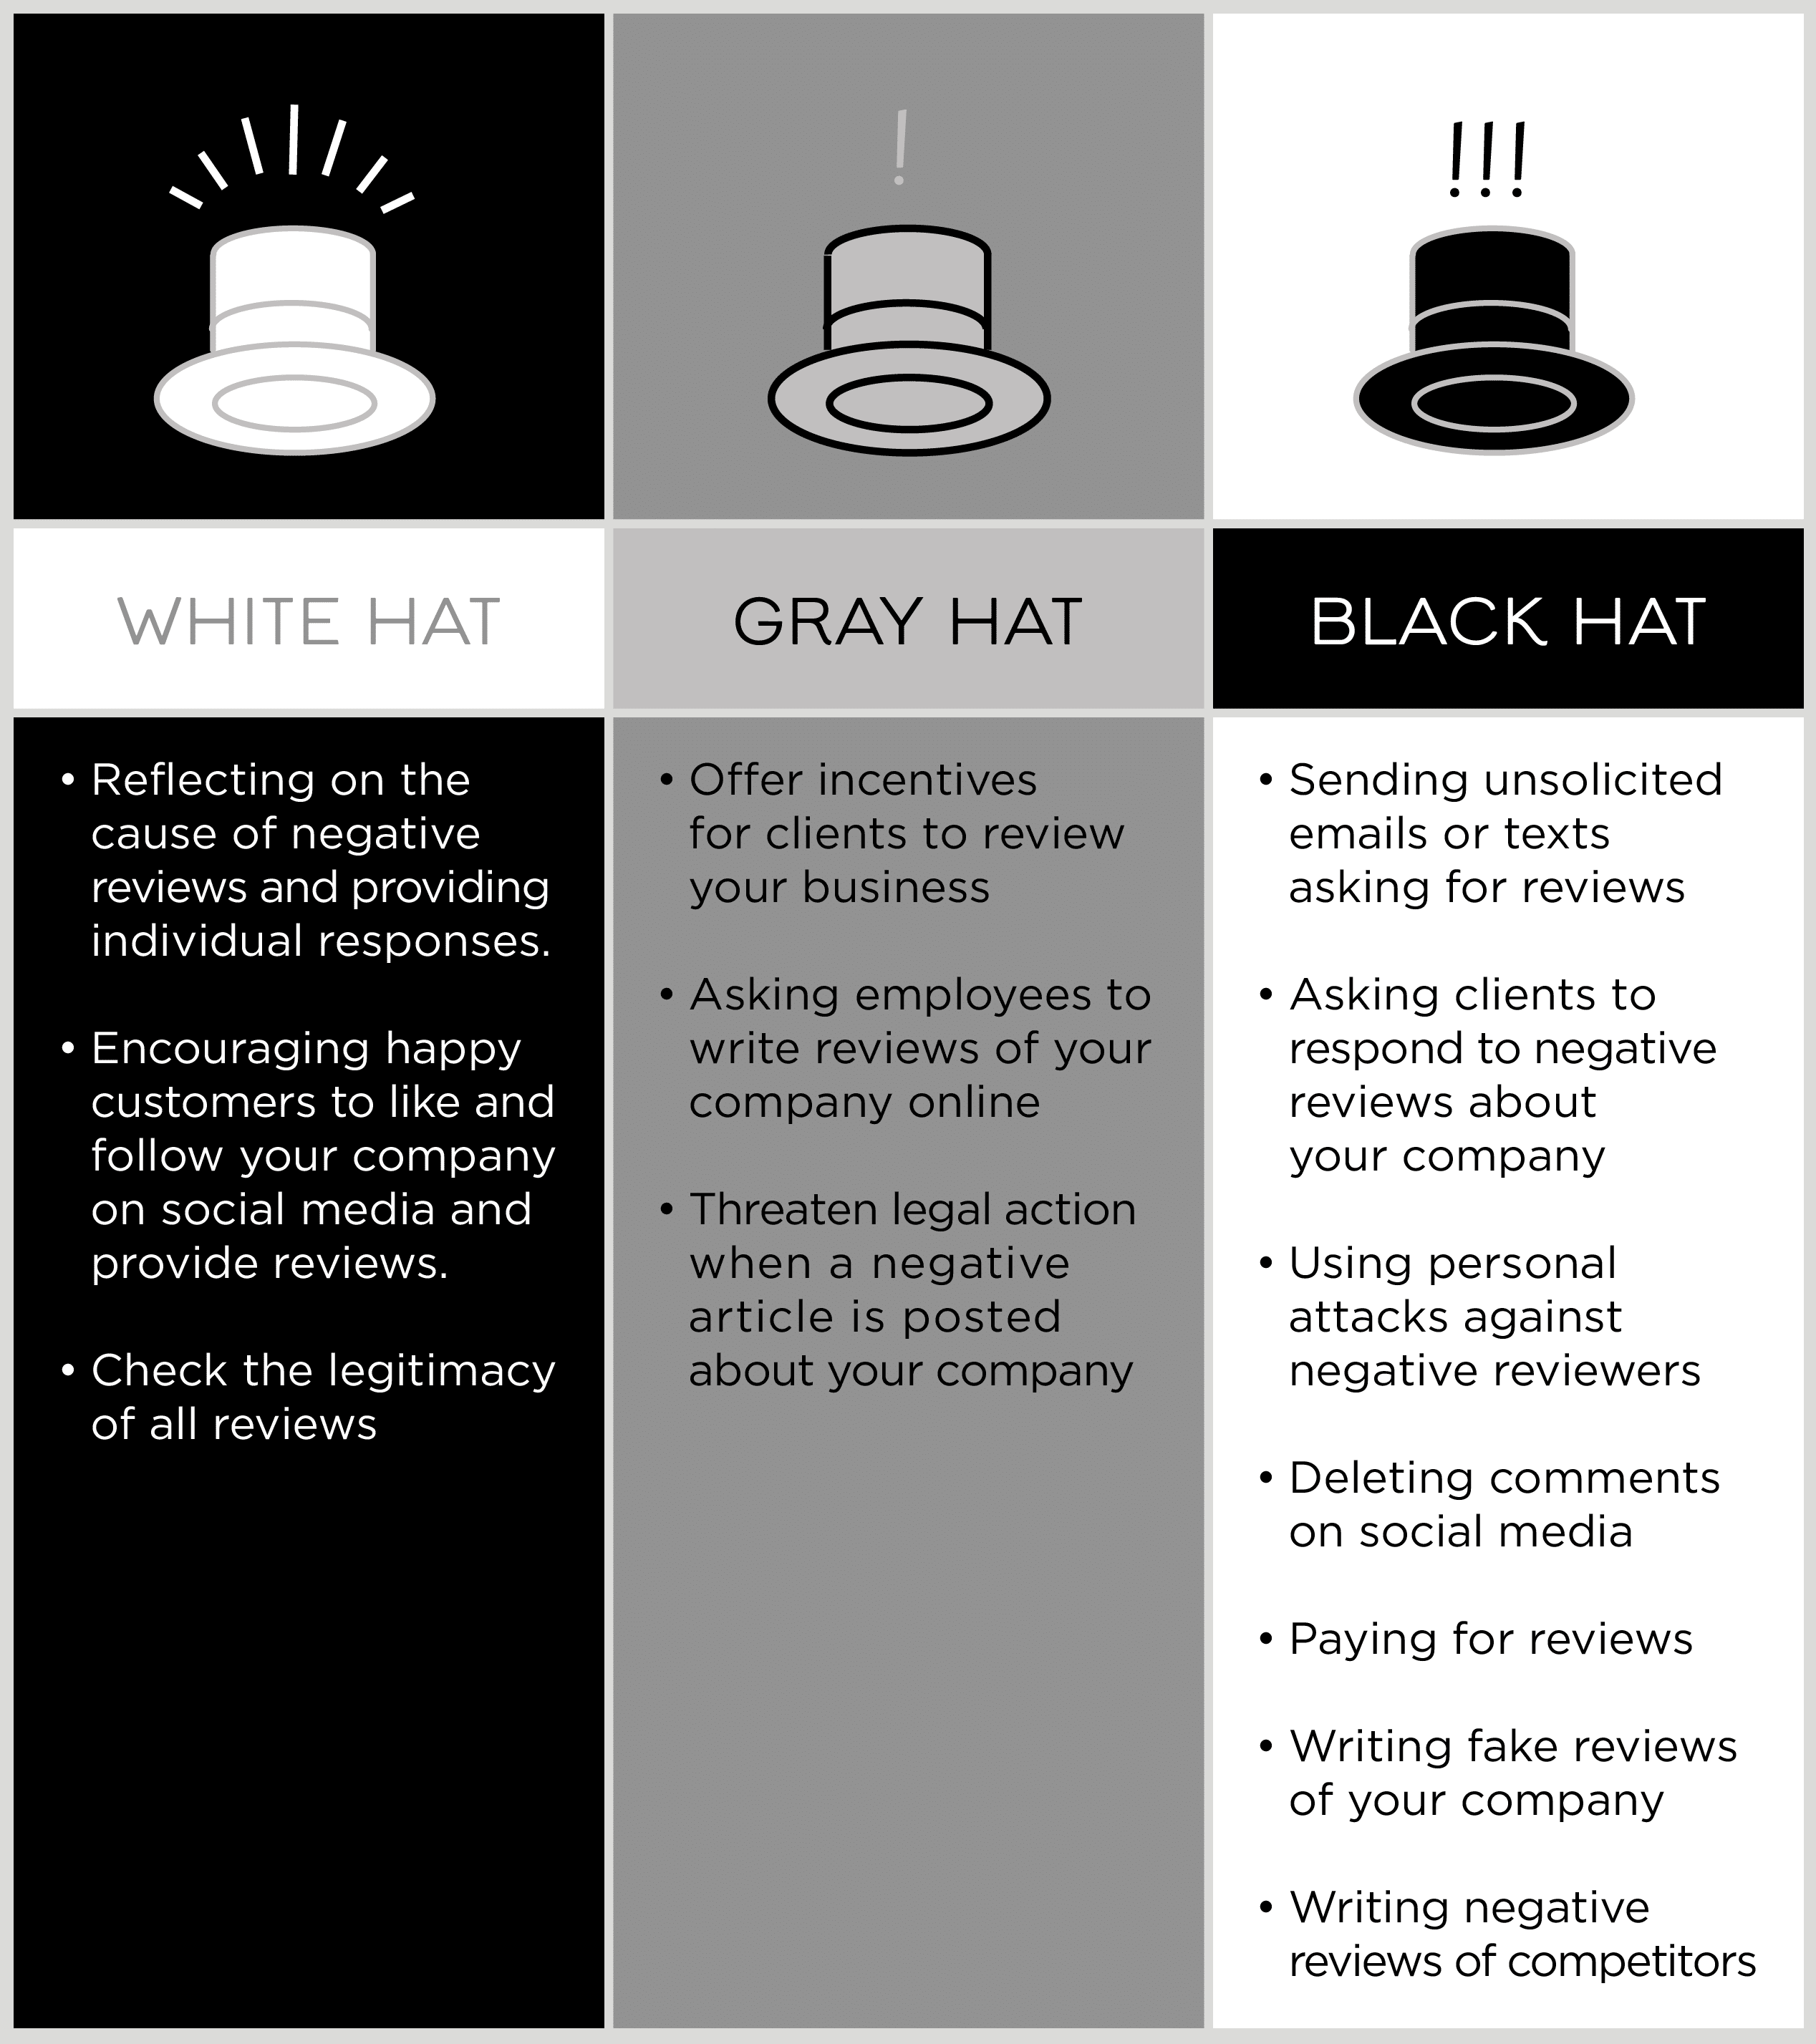 Illustrated table showing the differences between white hat, gray hat, and black hat repuation management tactics.